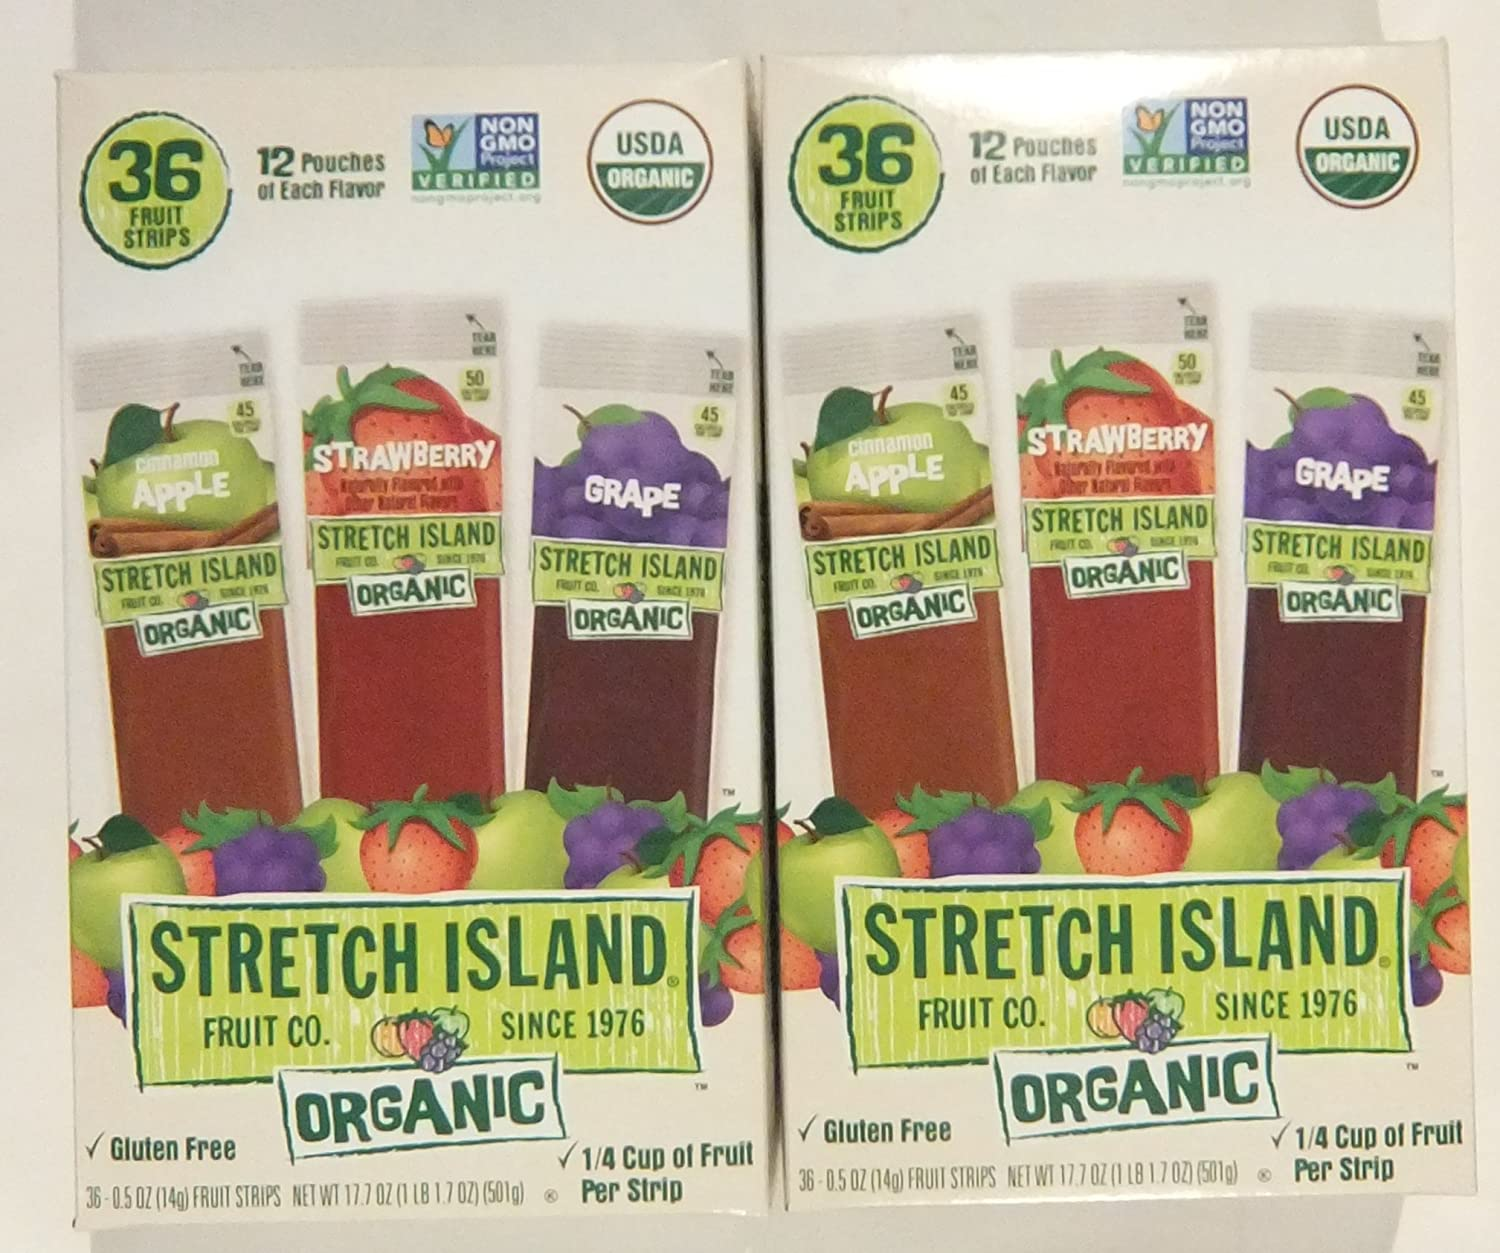 Stretch Island Organic Fruit Leather Strips, Assorted Flavors, 36 strips/box (Pack of 2)